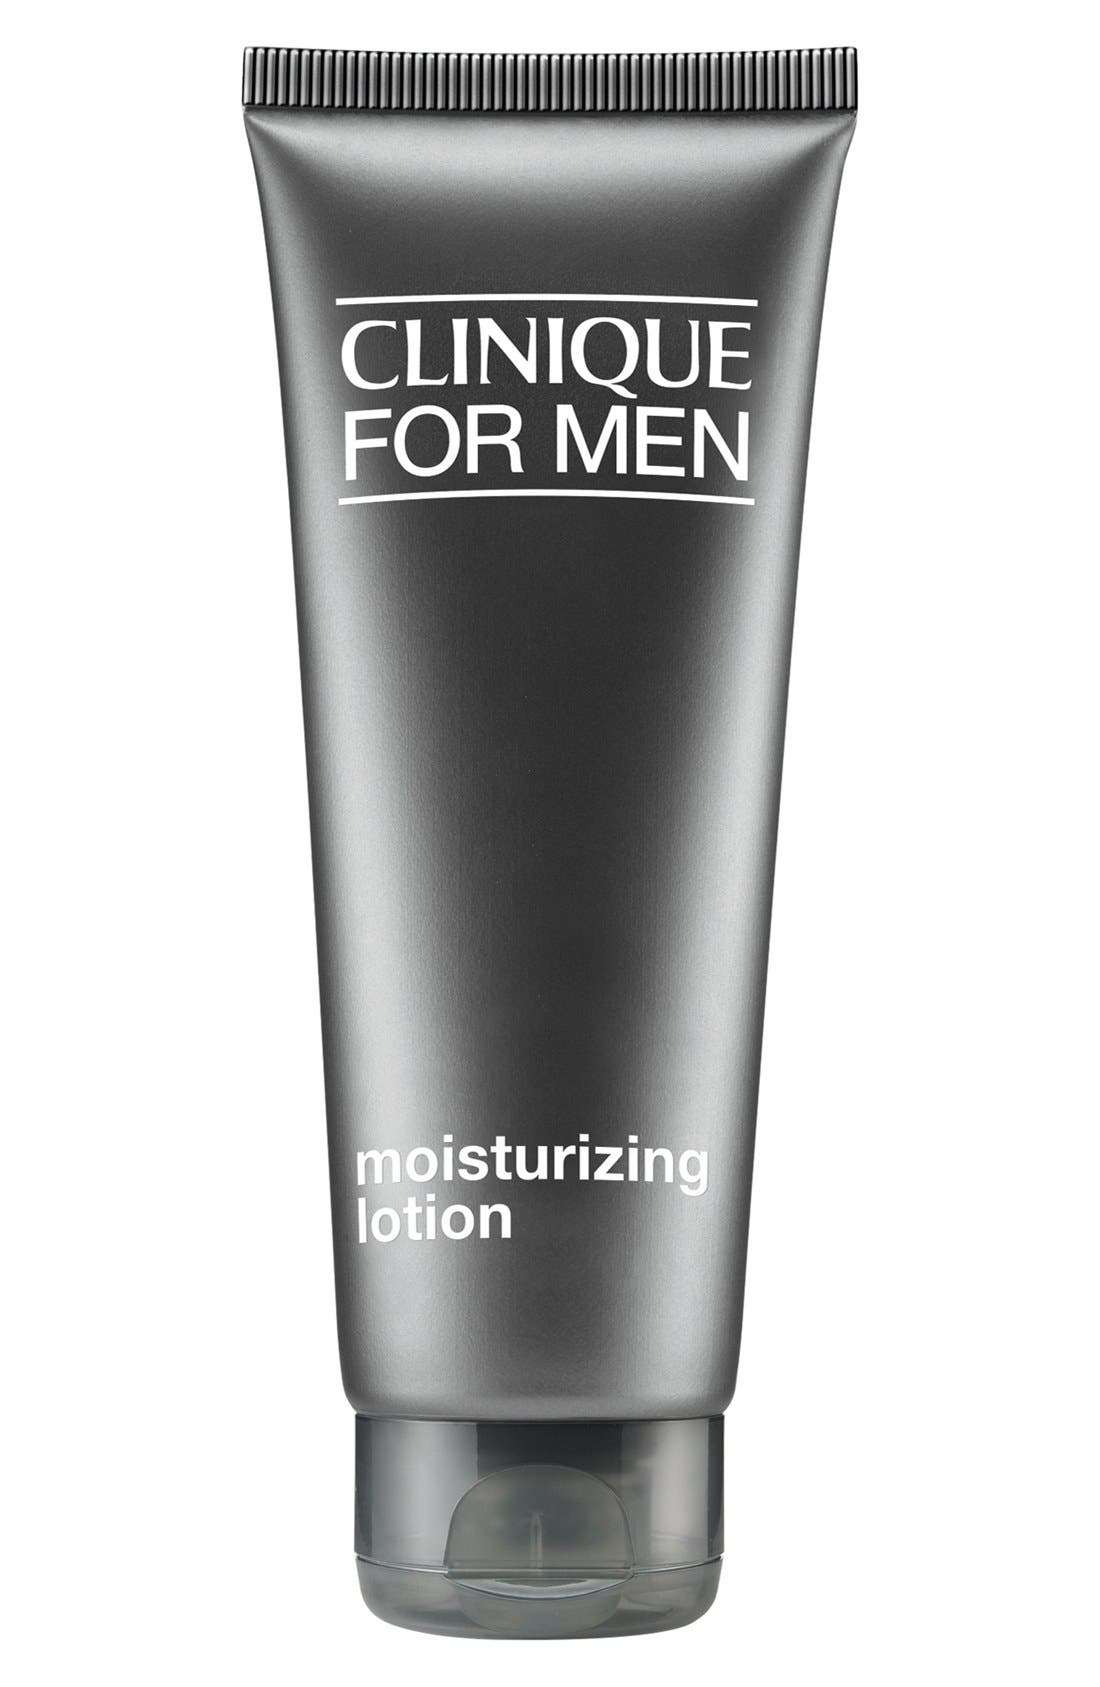 Clinique for Men Moisturizing Lotion